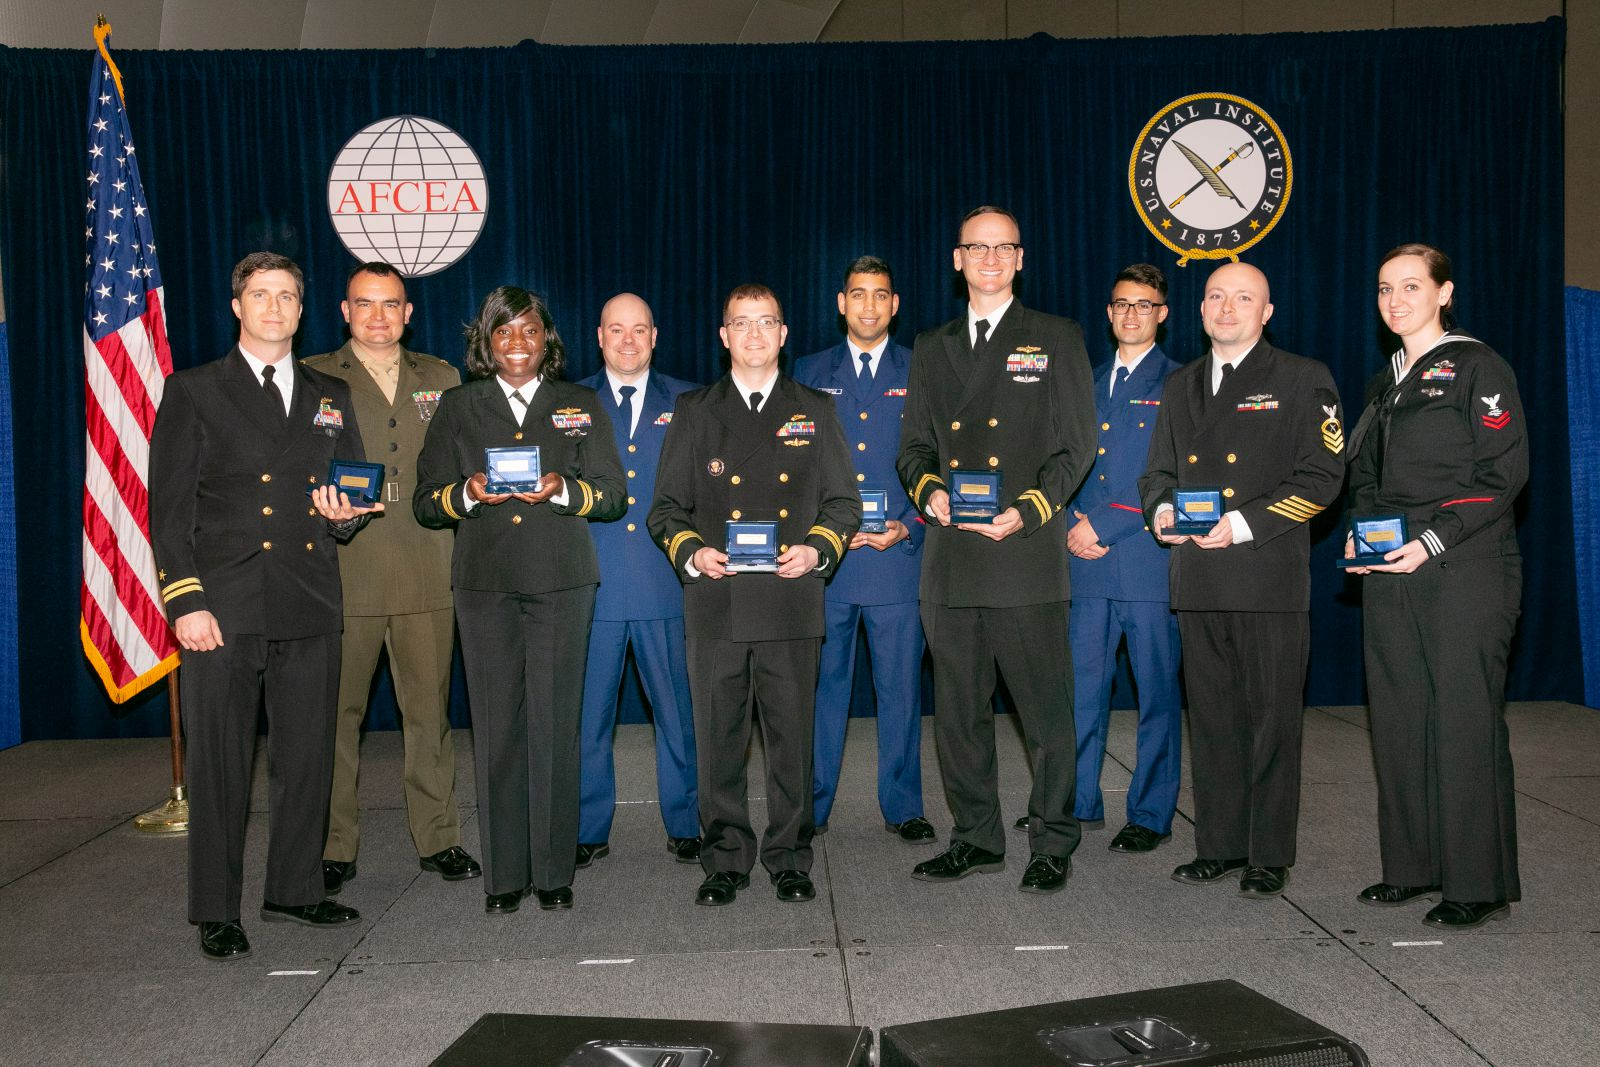 Copernicus Winners pose with their awards in front of a dark blue curtain with the logos of AFCEA and the U.S. Naval Institute and the American flag at WEST 2019